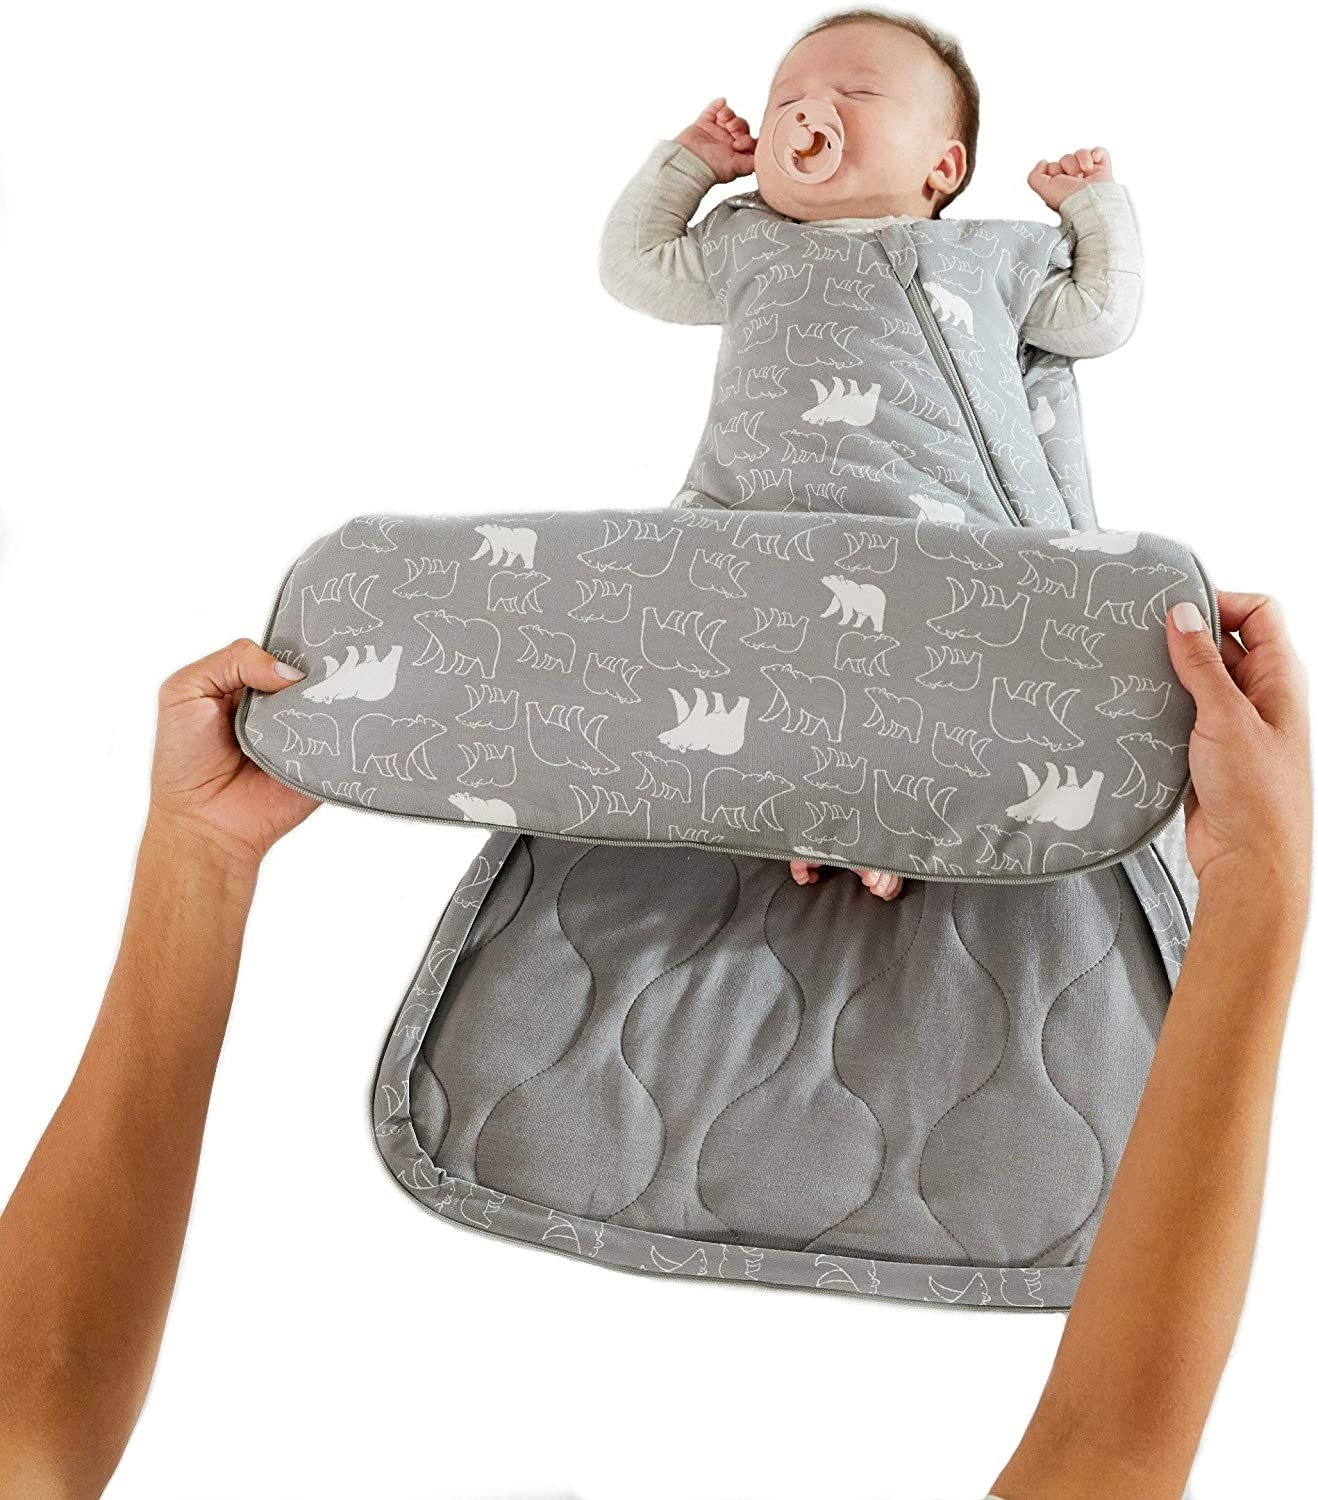 GUNAMUNA Baby Swaddle Max 59% OFF Sleep Bag Duvet Sales of SALE items from new works 1.0 TOG Newborn for to M 3